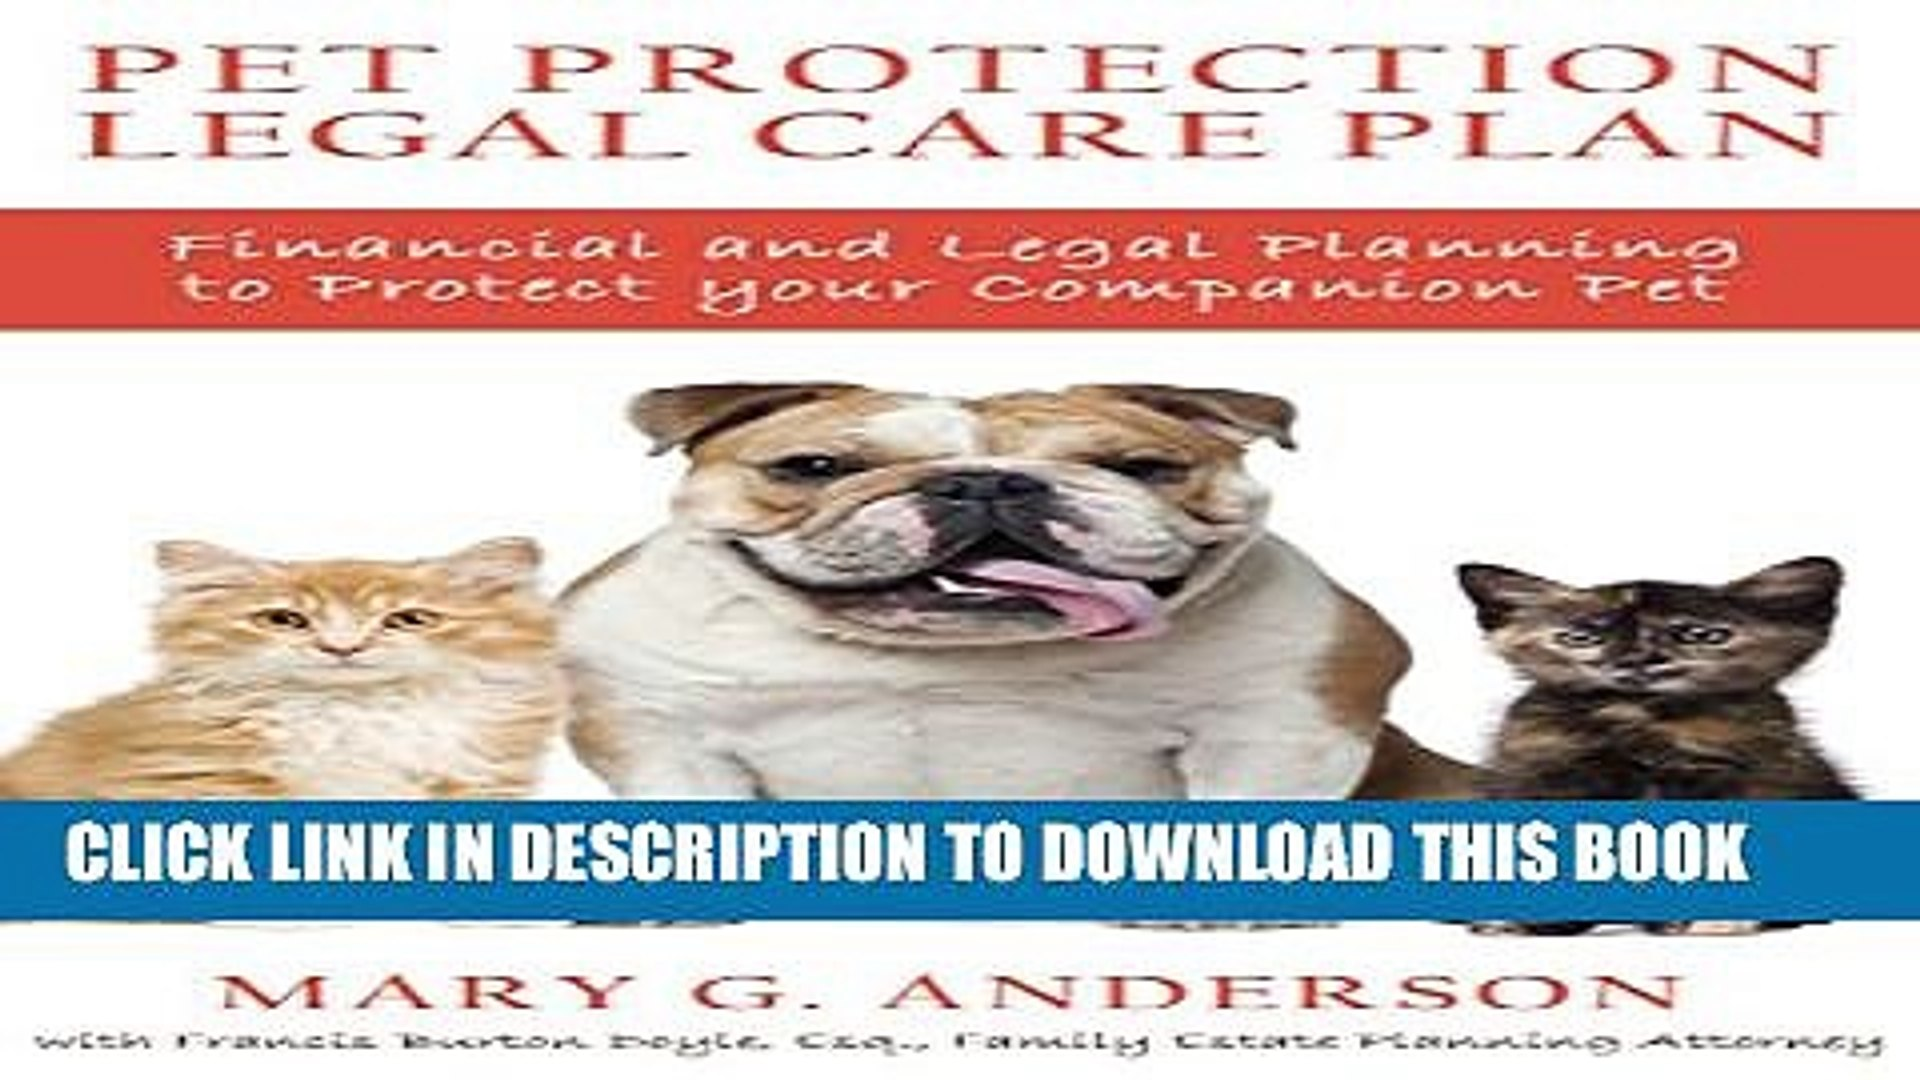 [PDF] Pet Protection Legal Care Plan: Financial and Legal Planning to Protect Our Companion Pets